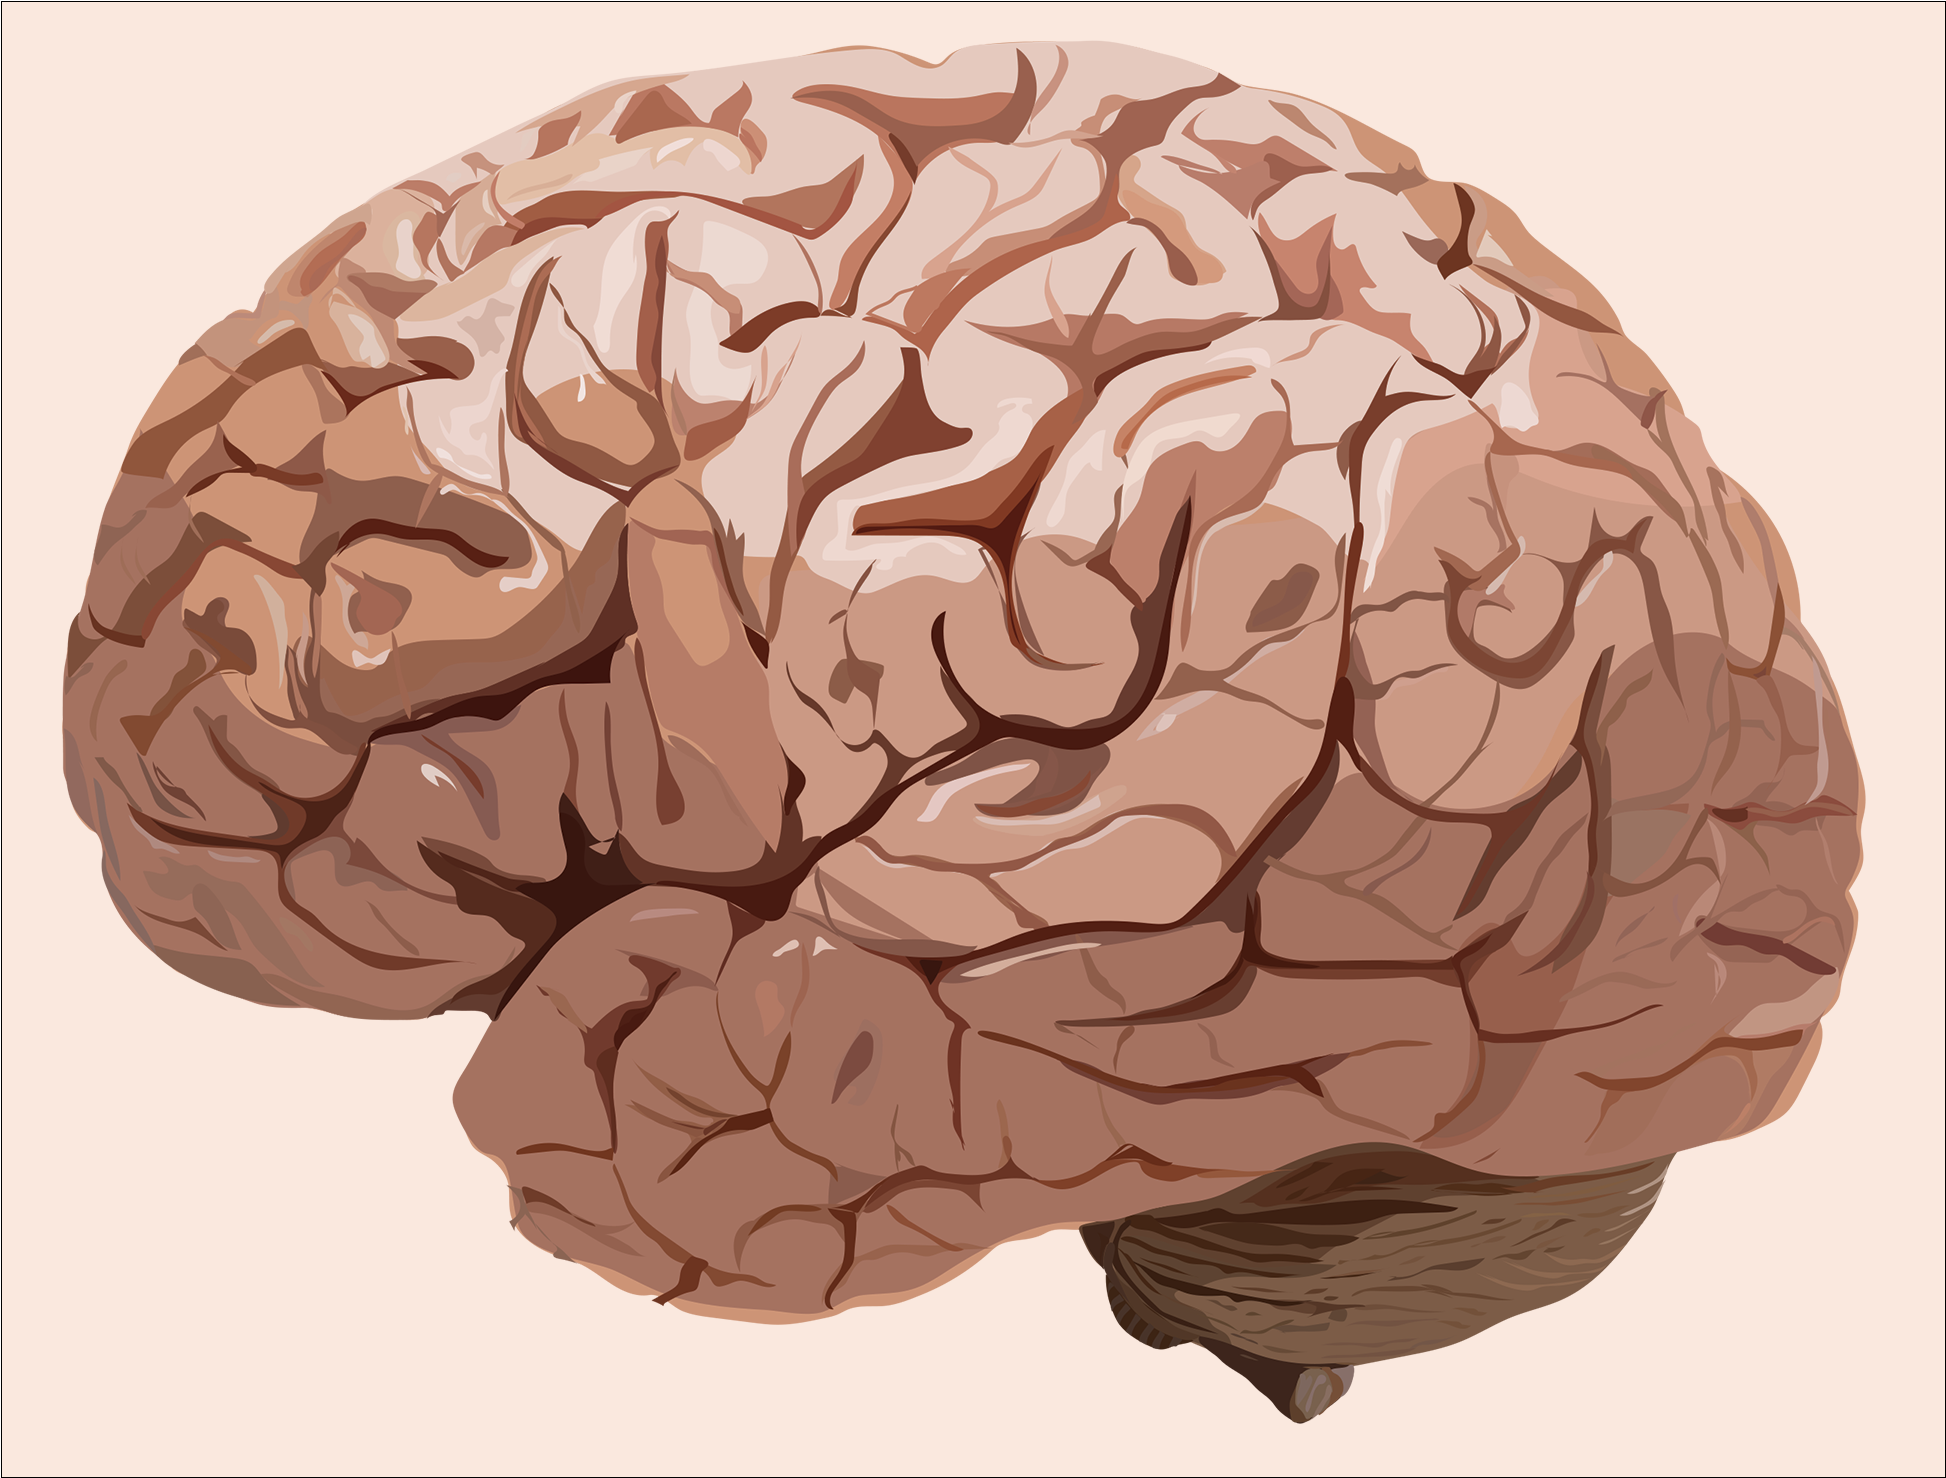 Brain Illustration for Patient Infographic